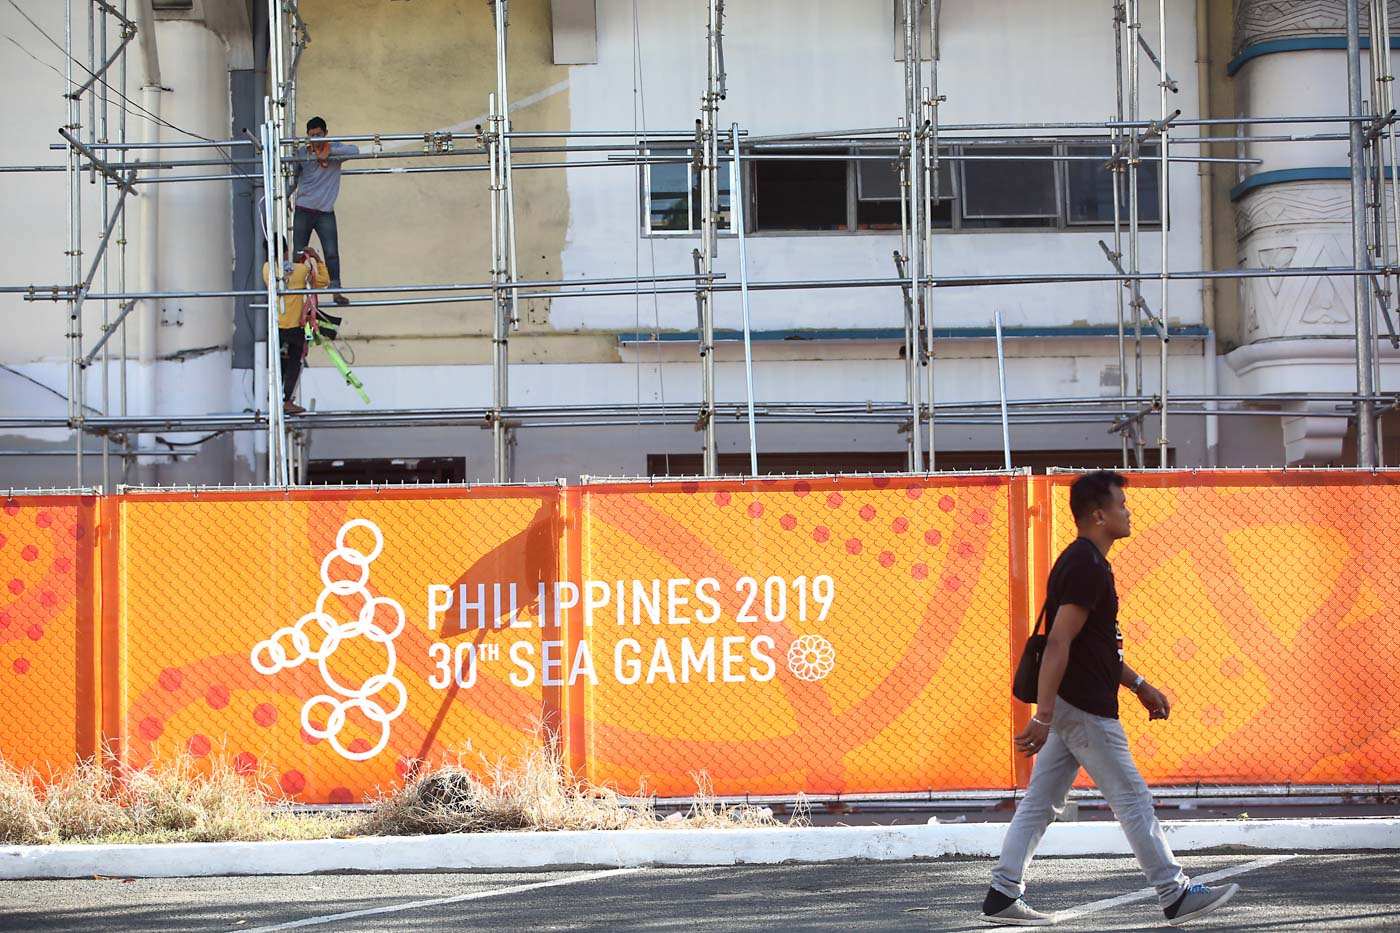 LAST MINUTE. Workers are trying to complete the repainting of the facade of the Rizal Memorial Stadium on the same day it hosts the football competition. Photo by Ben Nabong/Rappler